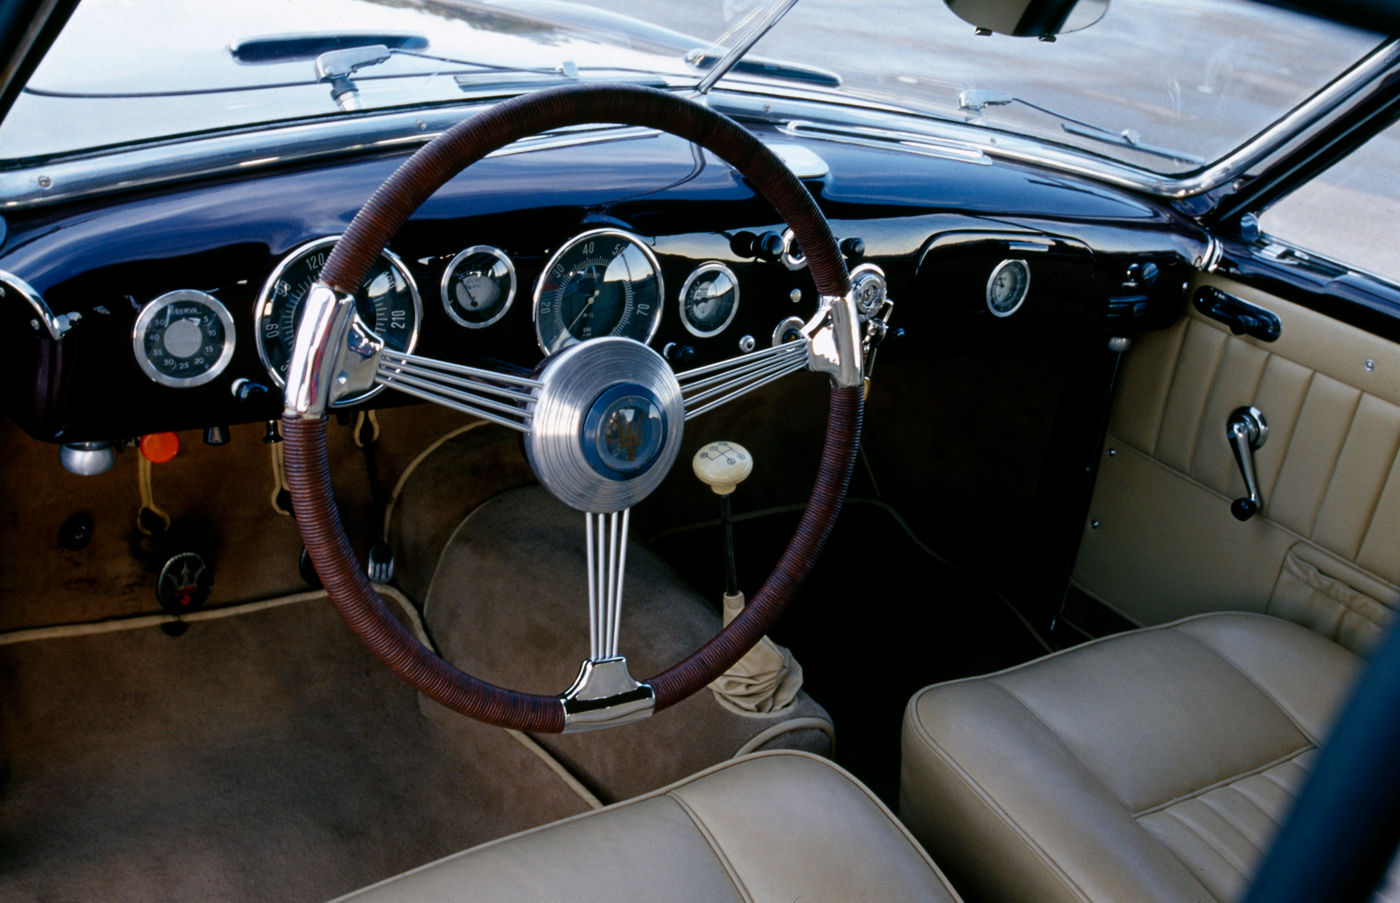 1947 Maserati A6 1500 Gran Turismo - interior of the 2-seater coupe